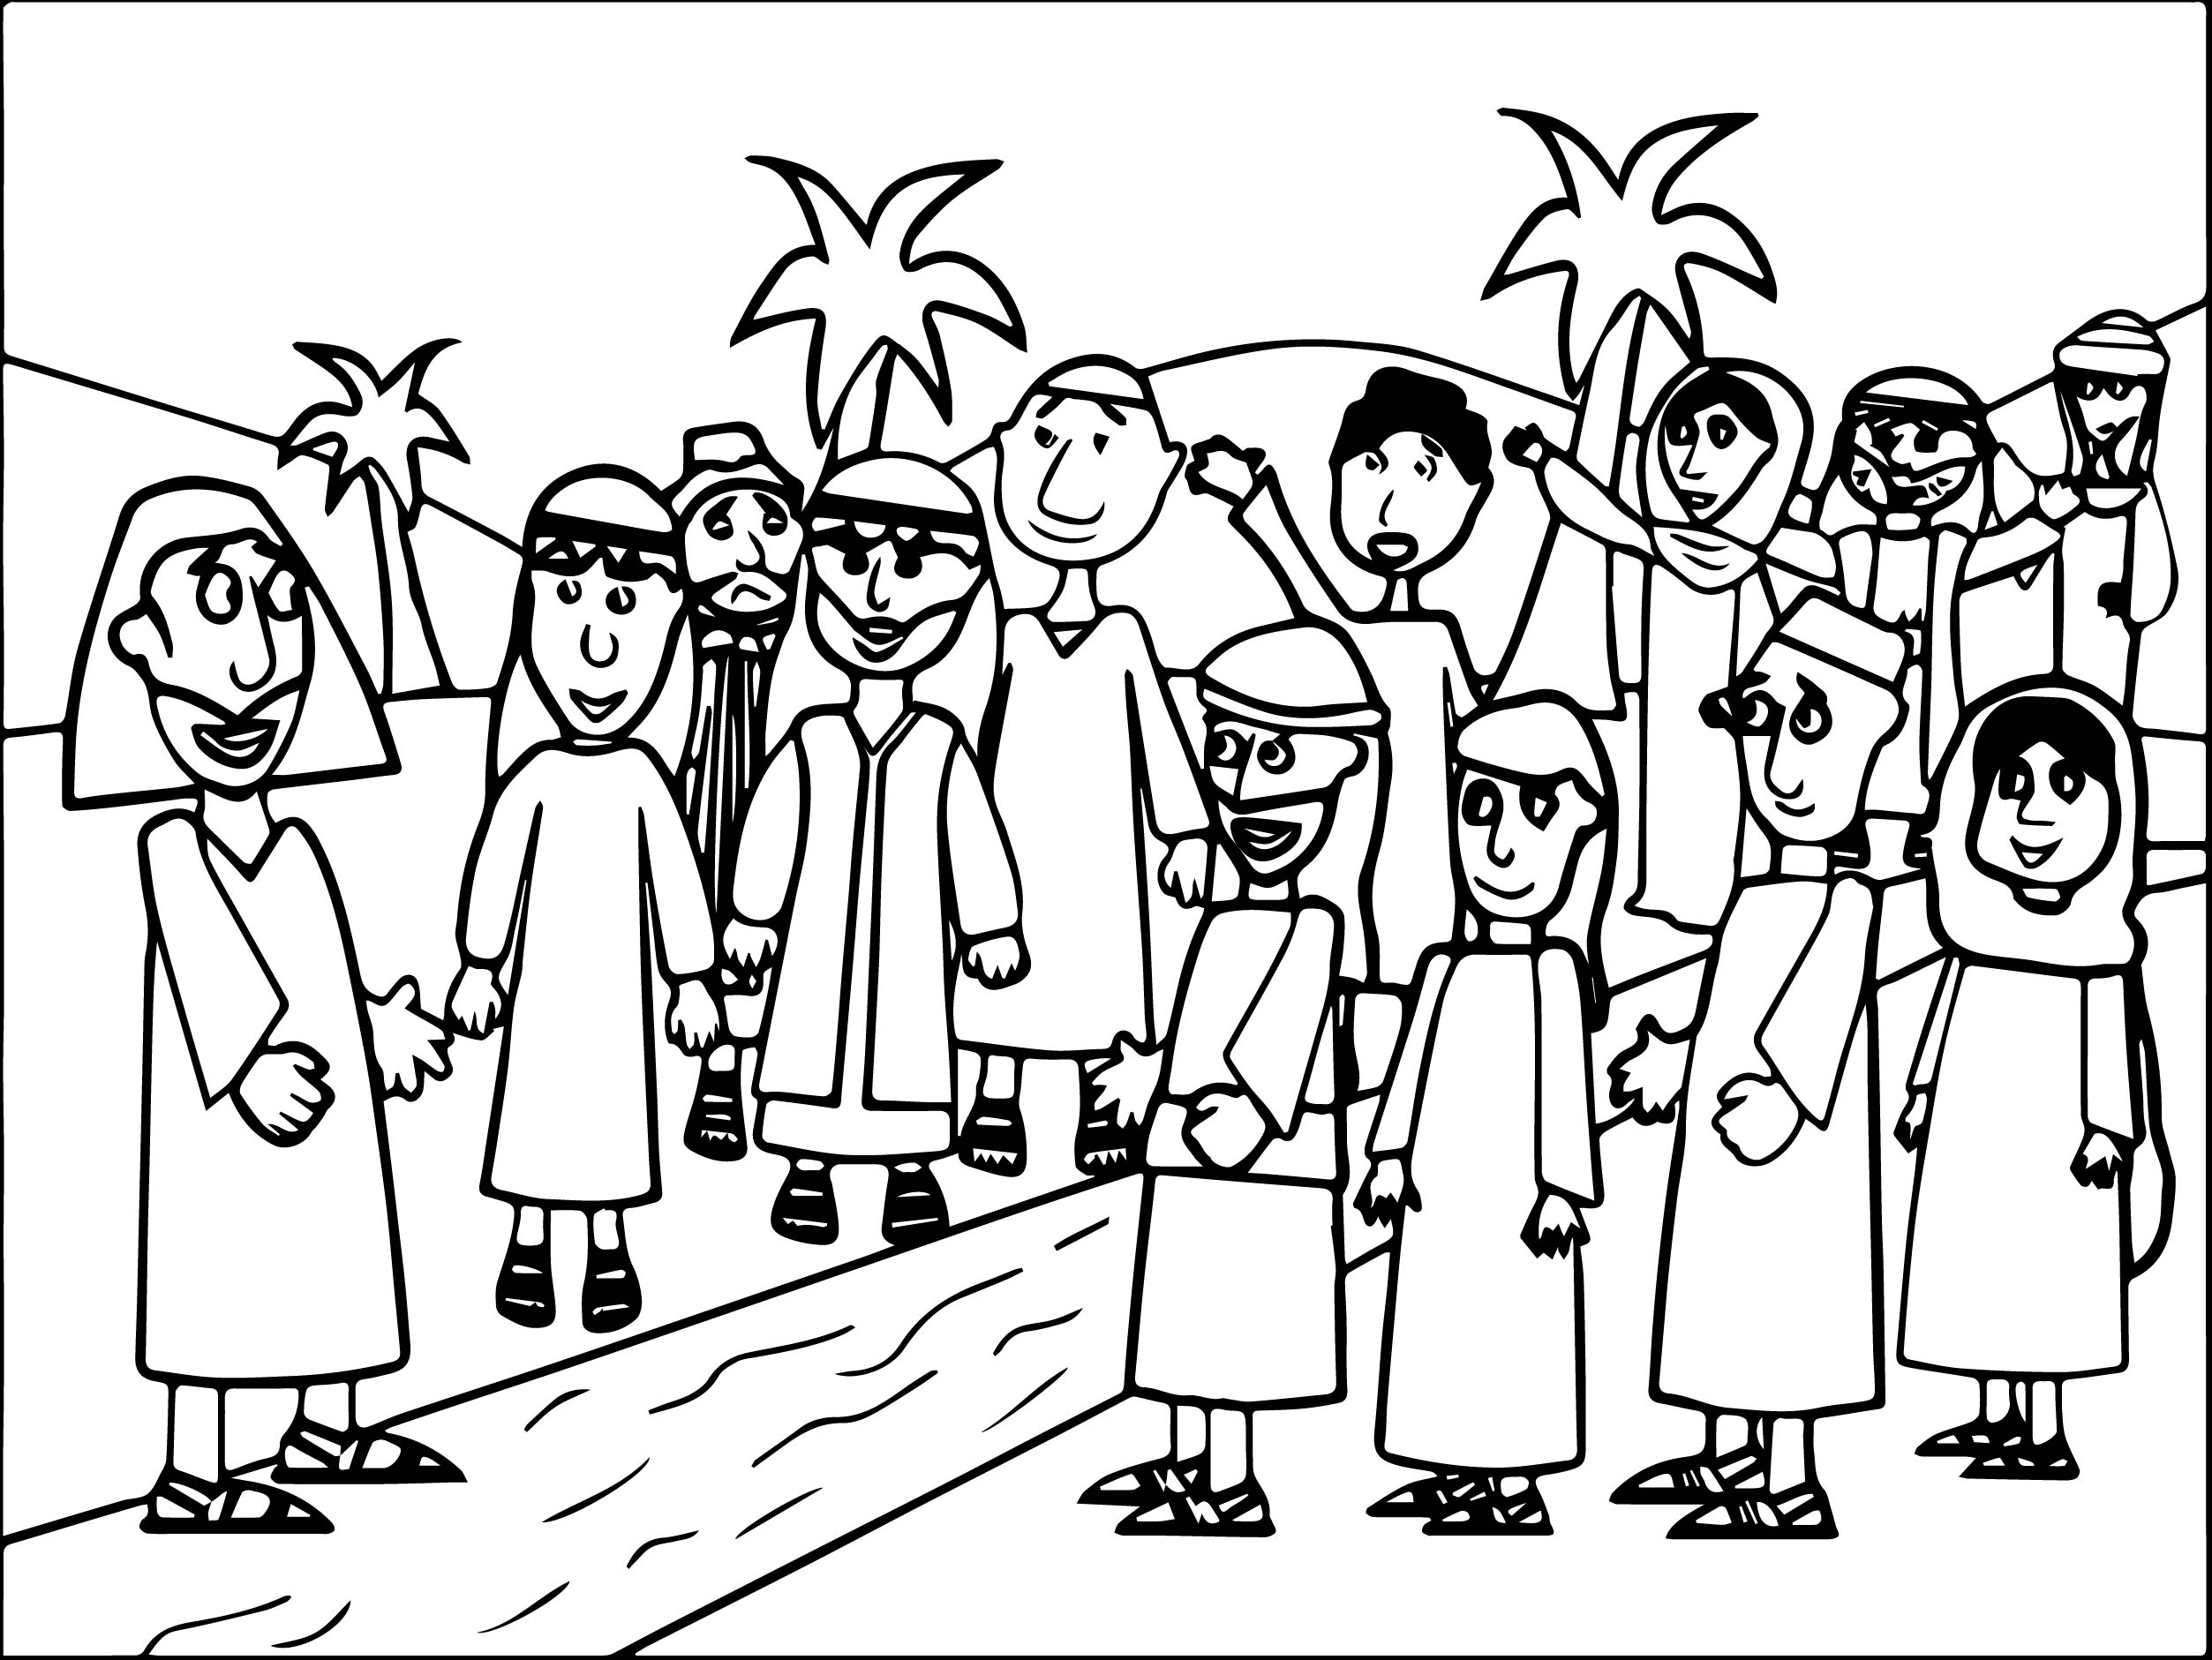 Coloring pages zacchaeus -  Zacchaeus Jesus Coloring Pages Download